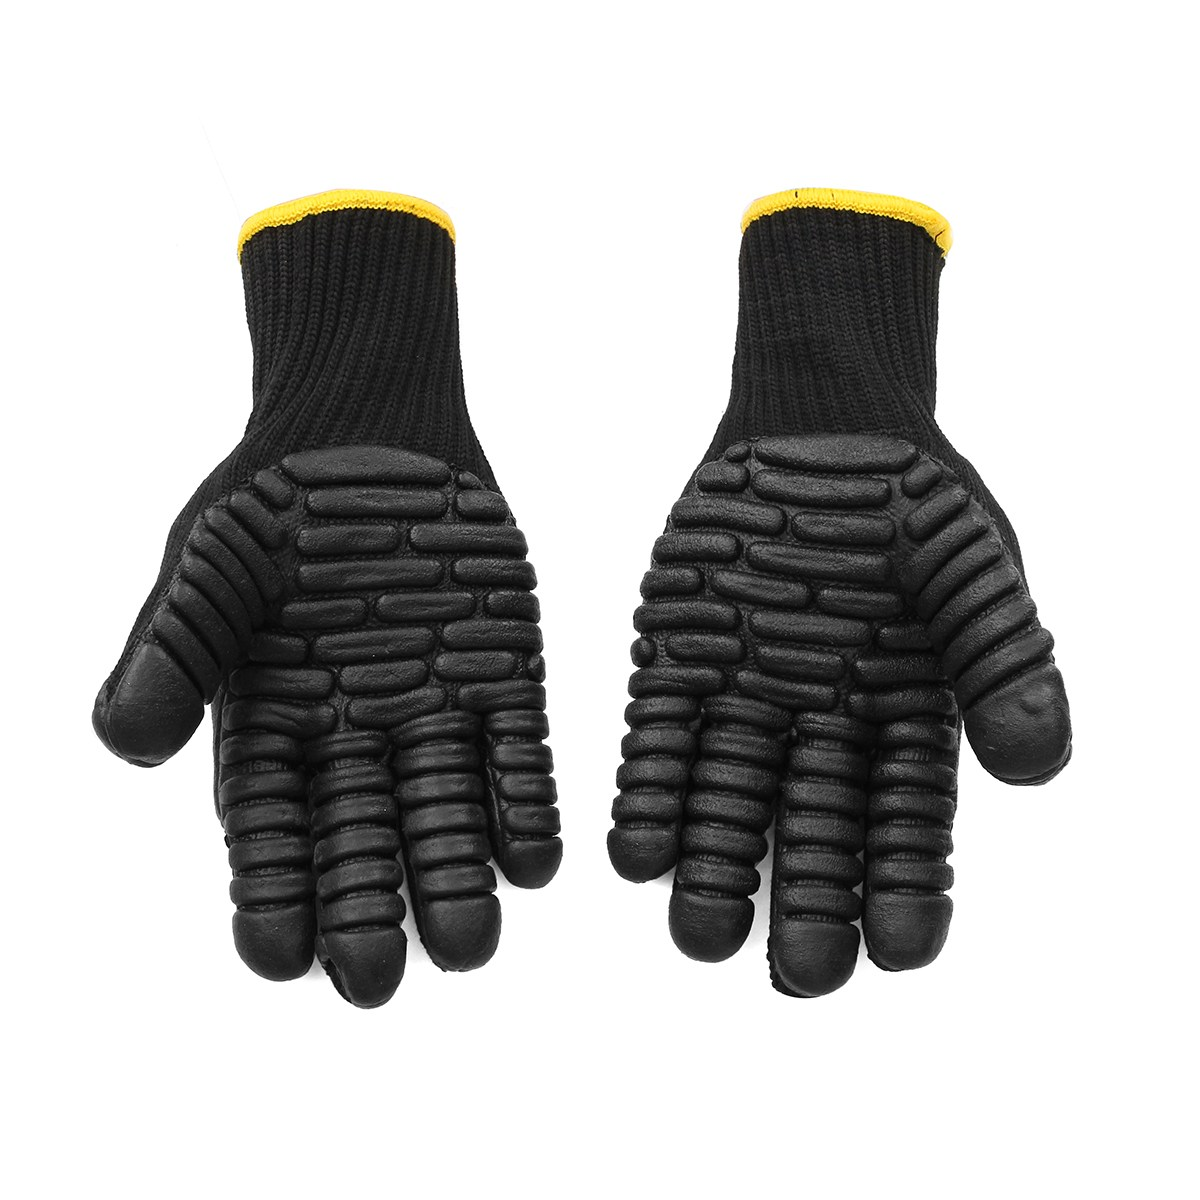 NEW Anti Vibration Gloves Power Tool Shockproof Reducing Work For Drilling Mine-coal Workplace Safety